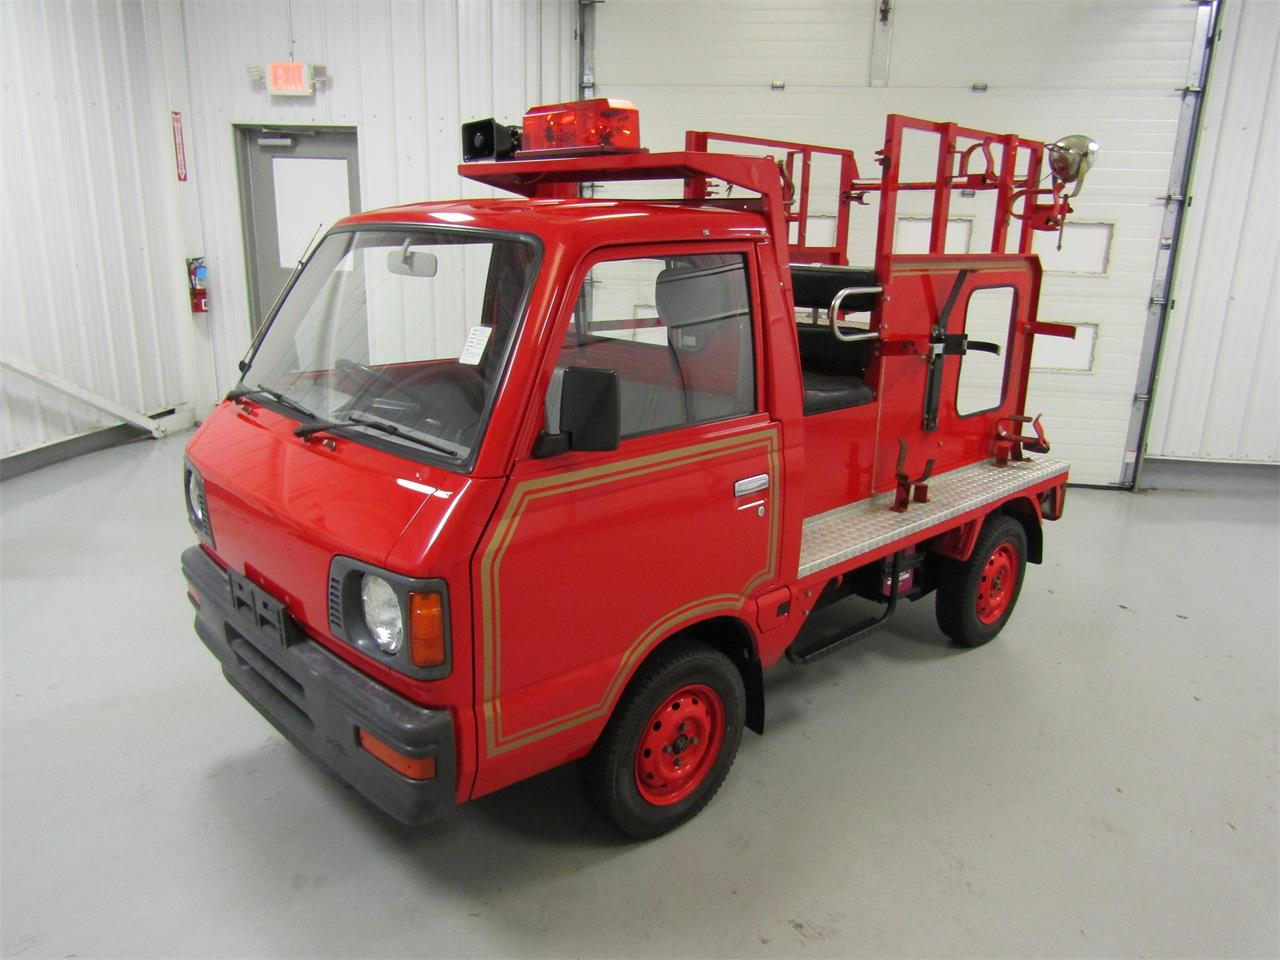 Large Picture of 1989 Subaru Sambar located in Virginia - $9,999.00 - JM3W